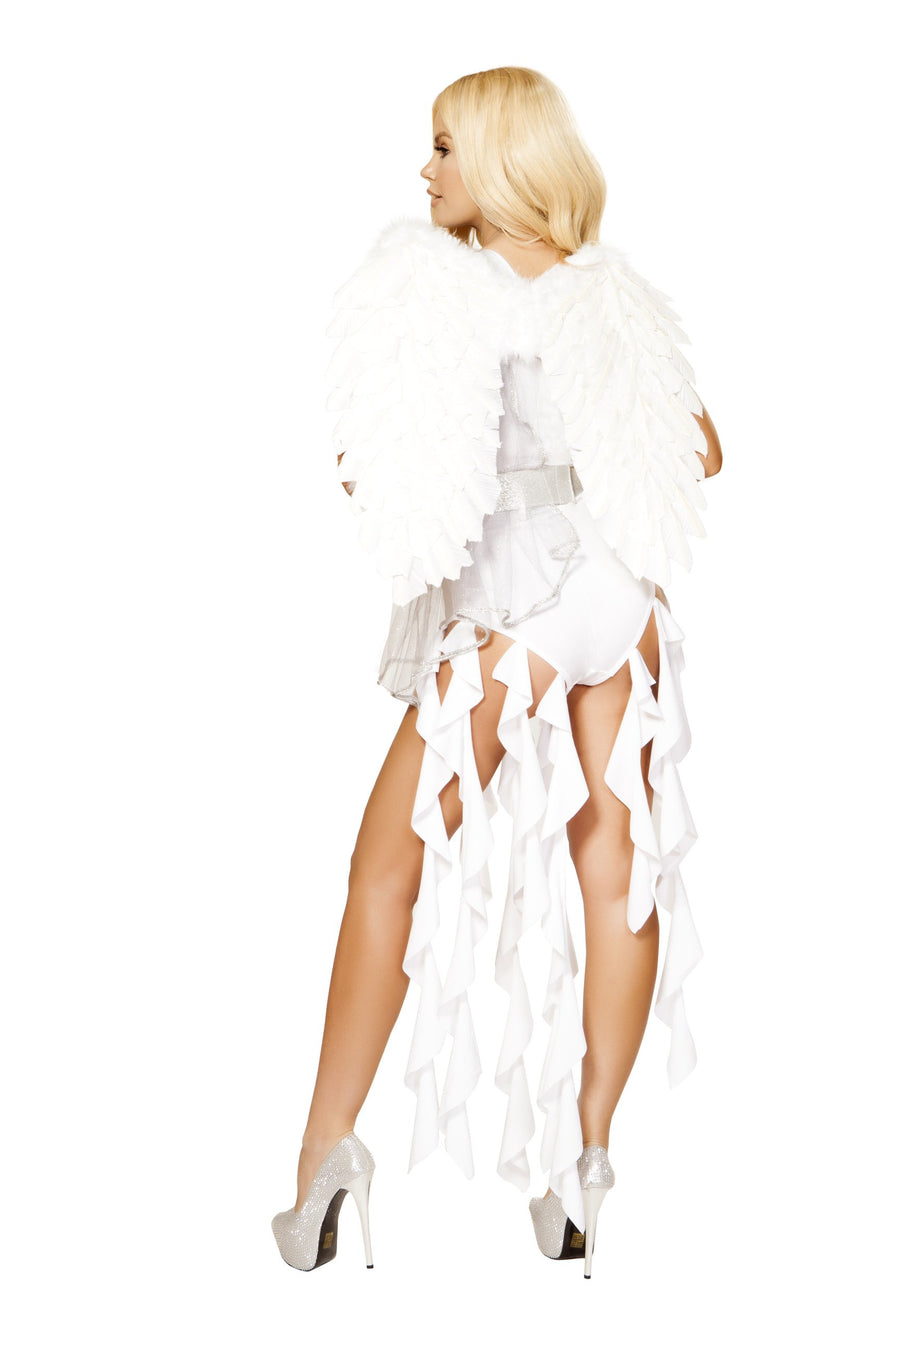 Angel Goddess Costume - Costumes, Roma - YourLamode